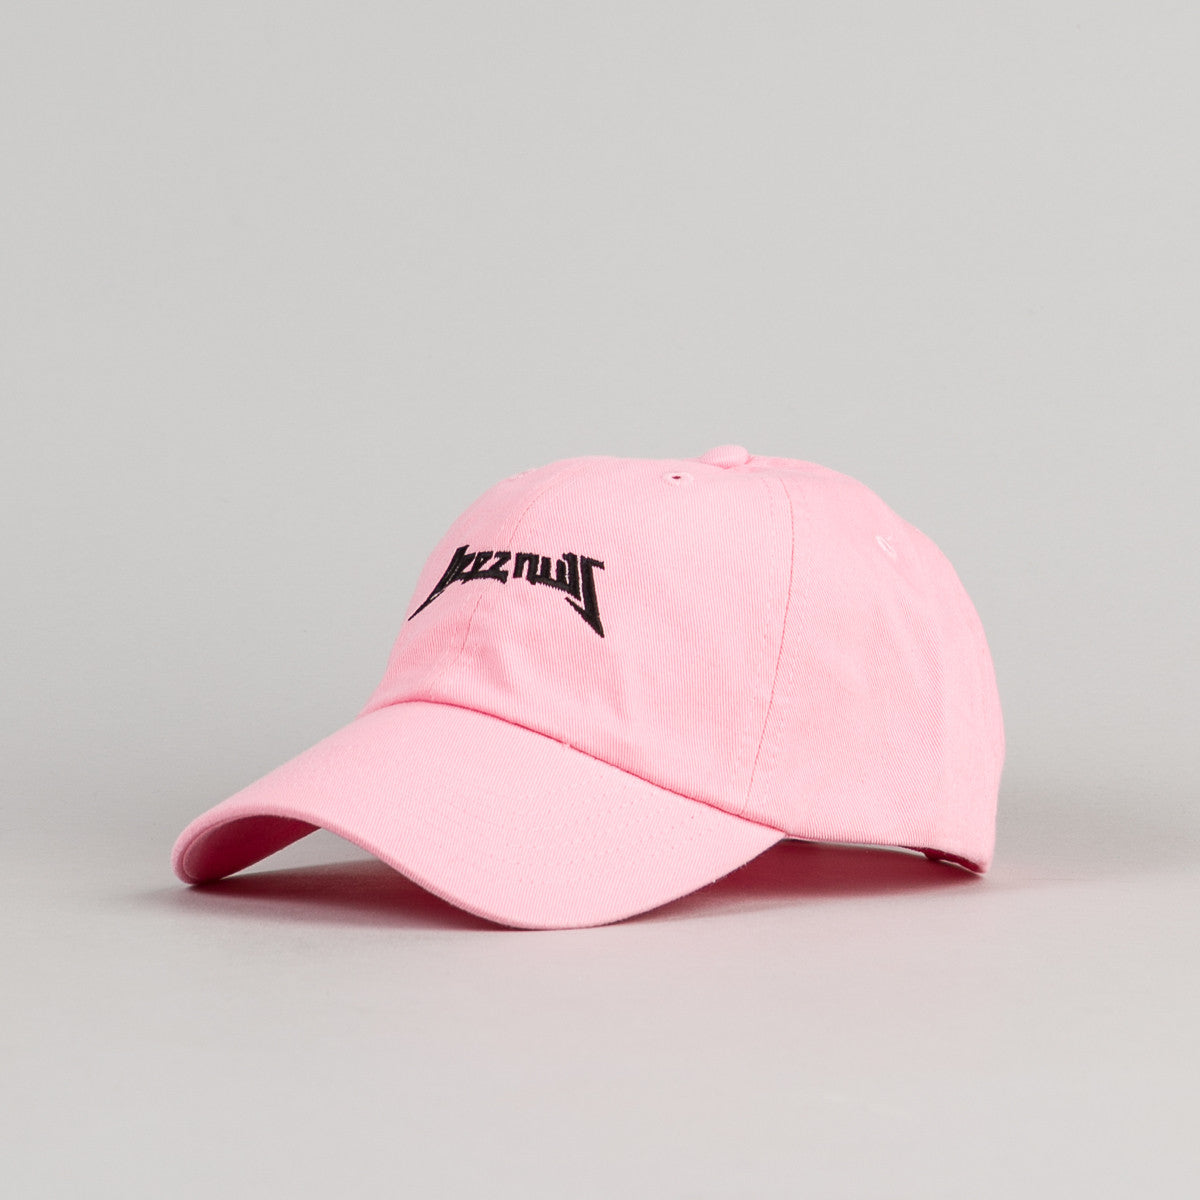 40s & Shorties Deez Nuts Cap - Pink